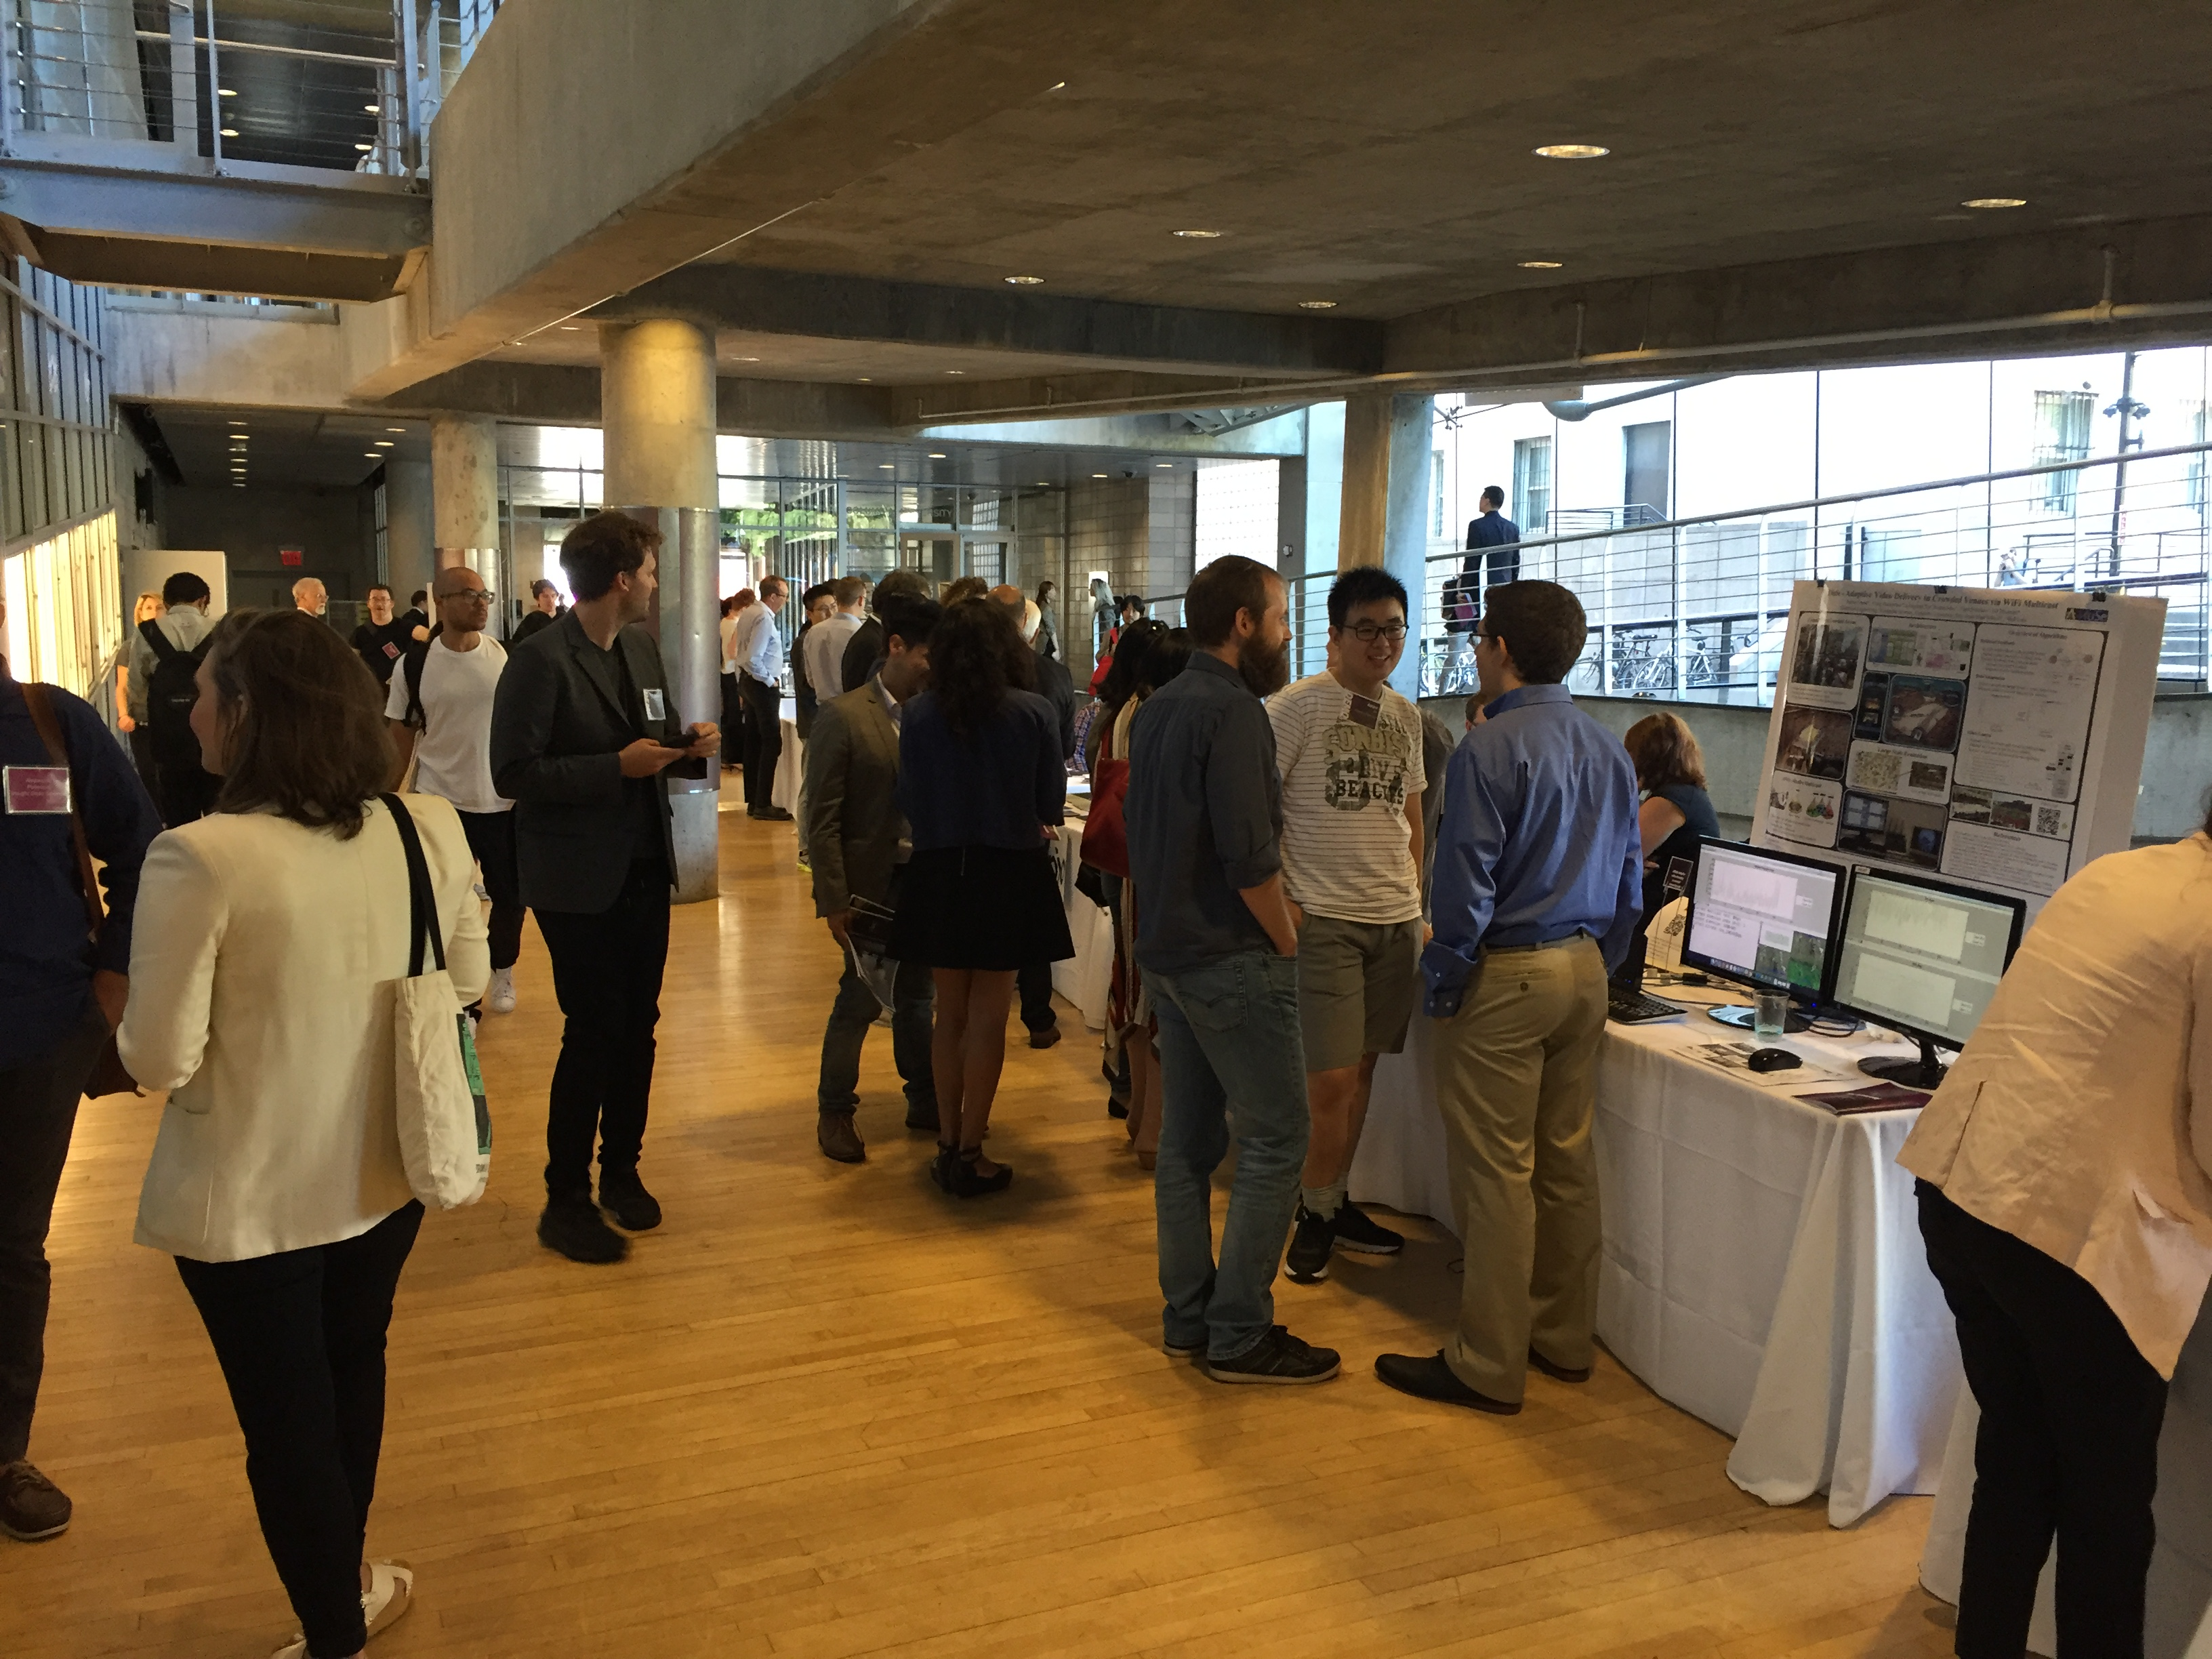 Hundreds of students displayed their work during the NYC Media Lab's Demo Showcase. Photo by Bianca Fortis.